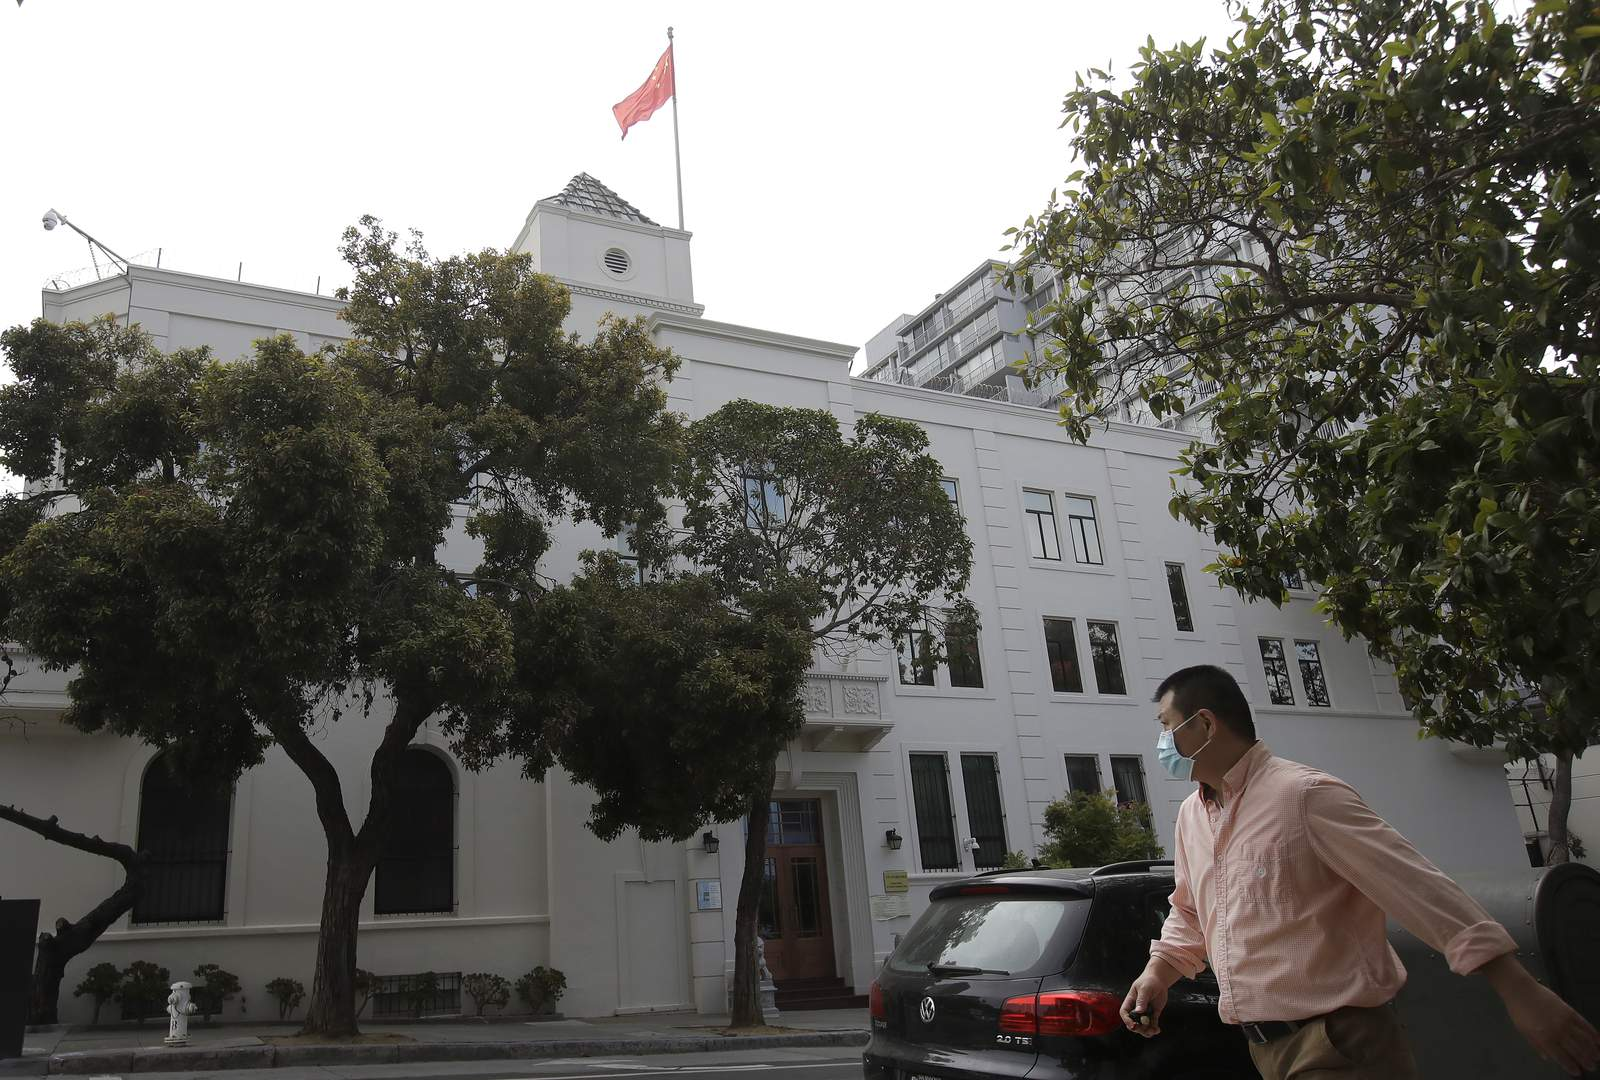 US: Researcher being harbored at Chinese consulate in SF